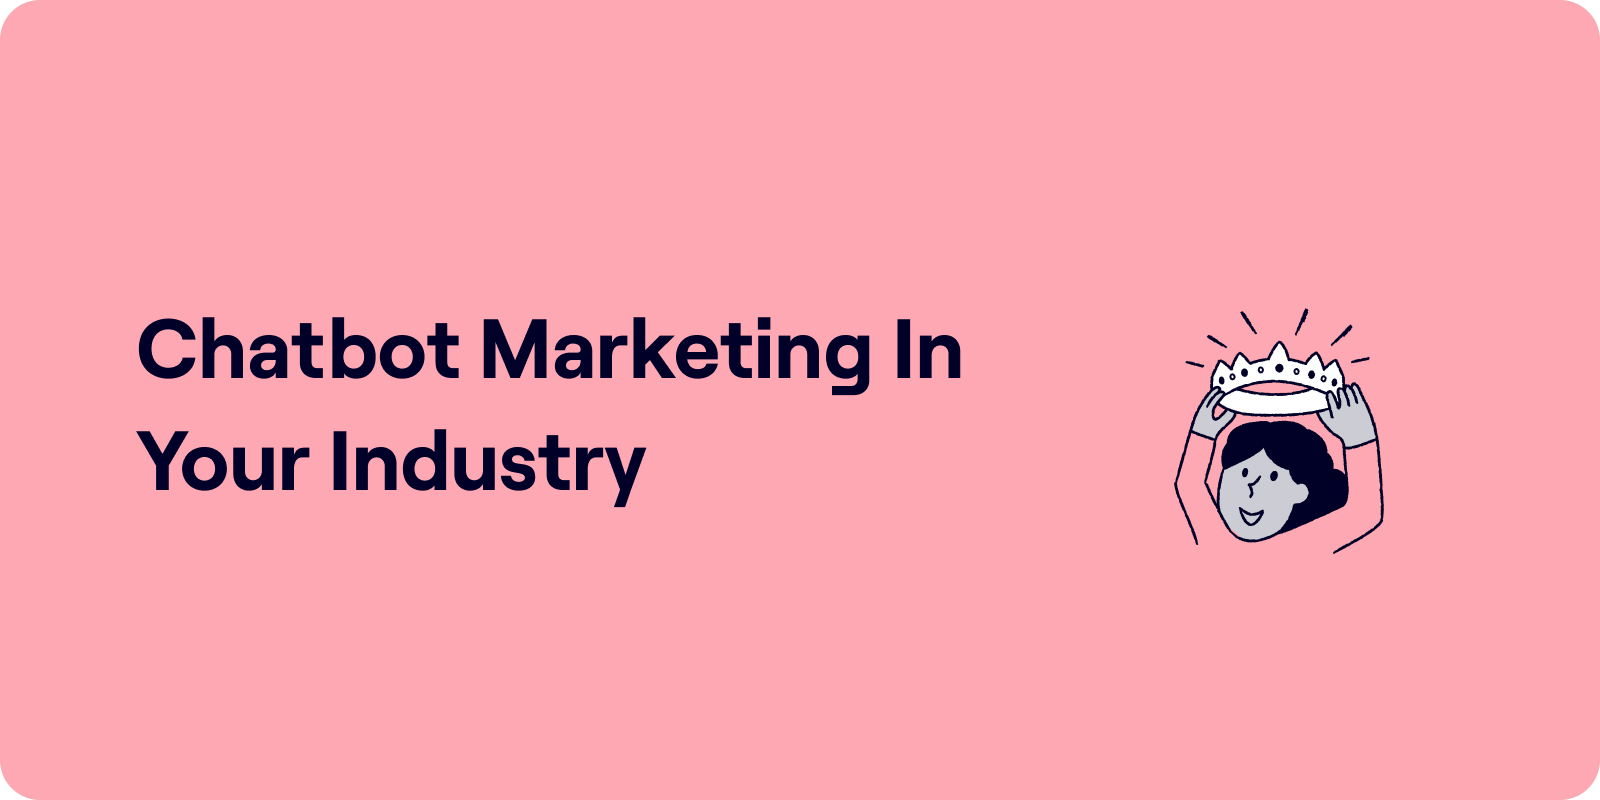 chatbot marketing in your industry